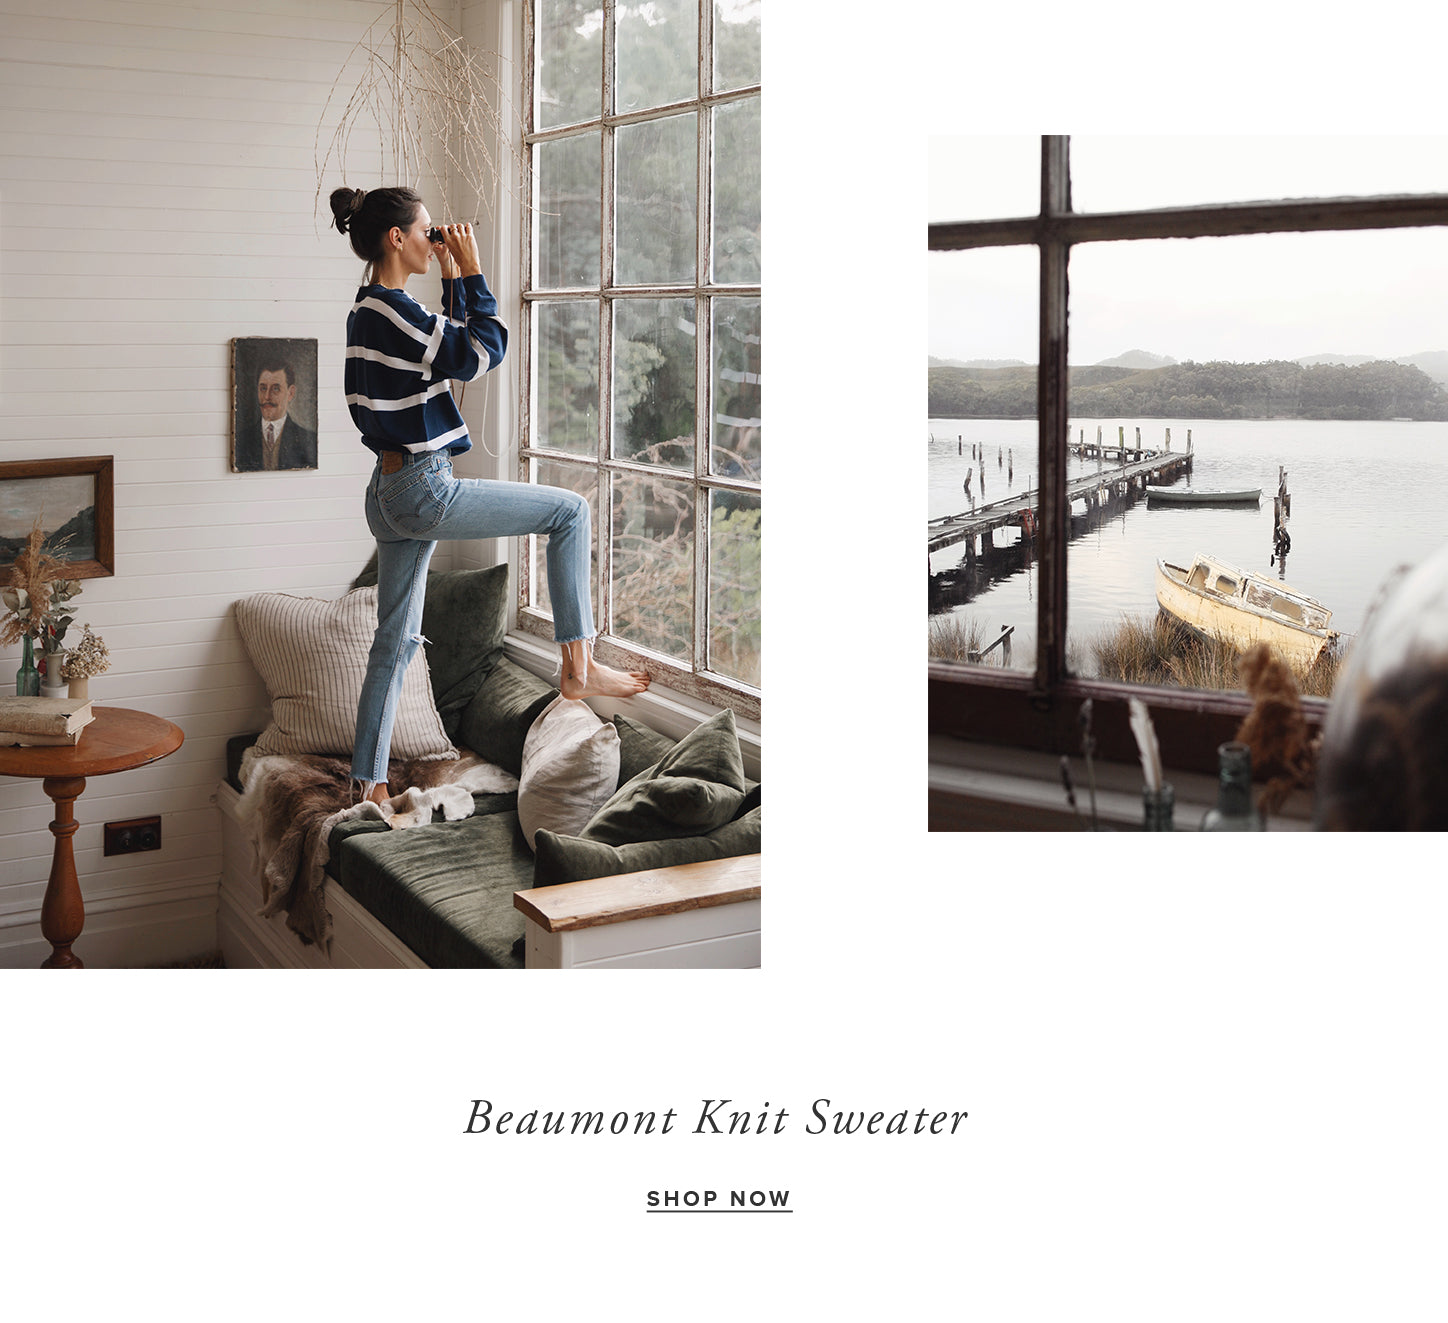 Beamont Knit Sweater